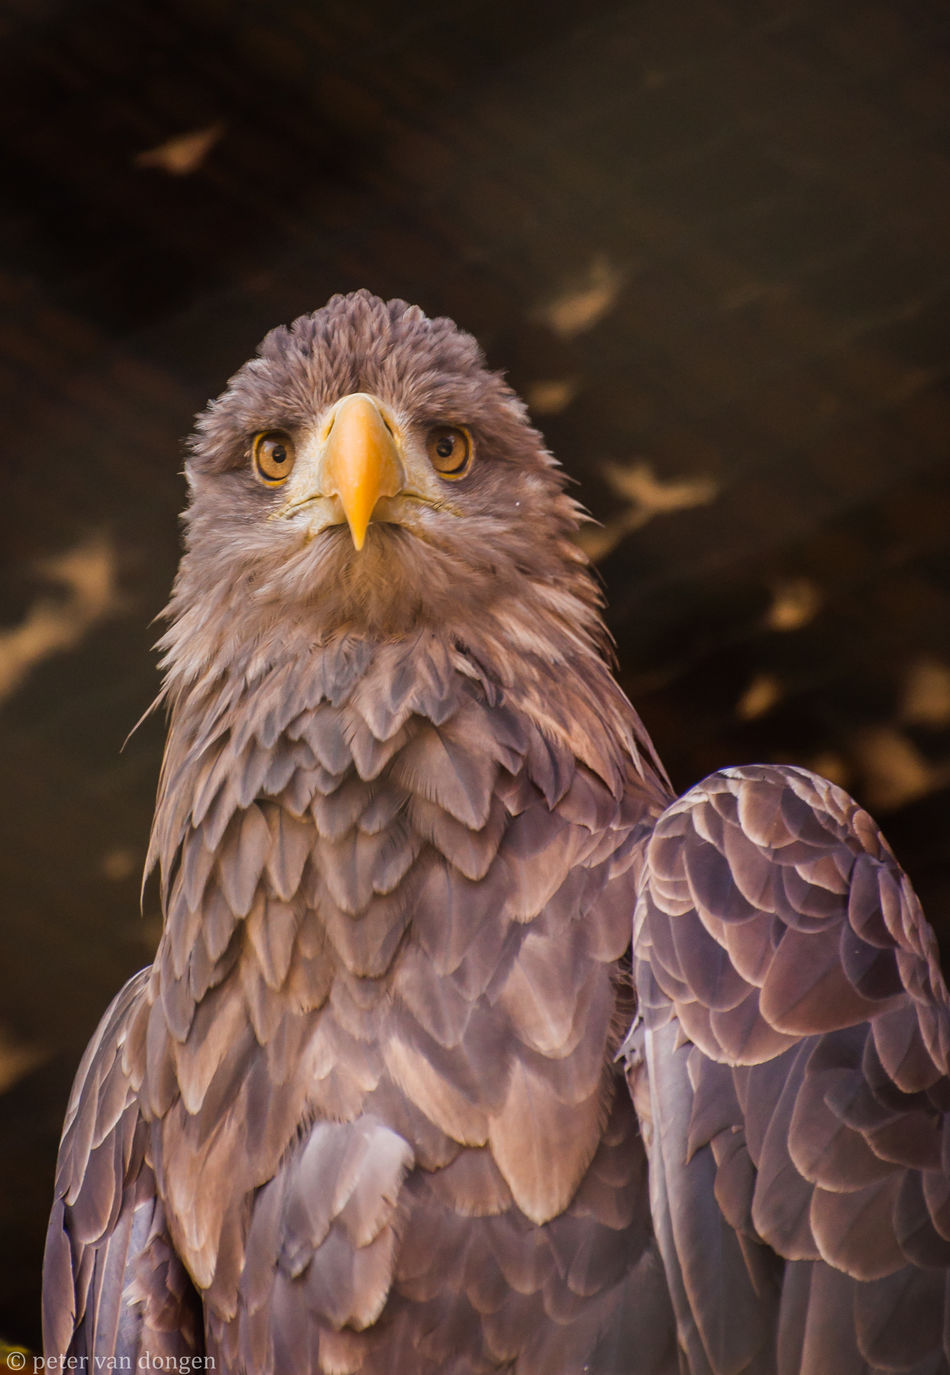 Bird Of Prey Eagle - Bird Nature Close-up Animal Themes No People Eagle Eaglephotography Nikon D90 Animals In The Wild Nature Petervdongen EyeEm Best Shots EyeEm Nature Lover Eyem Best Shots Nature_collection Eyemcaptured Feathered Friends Feathers